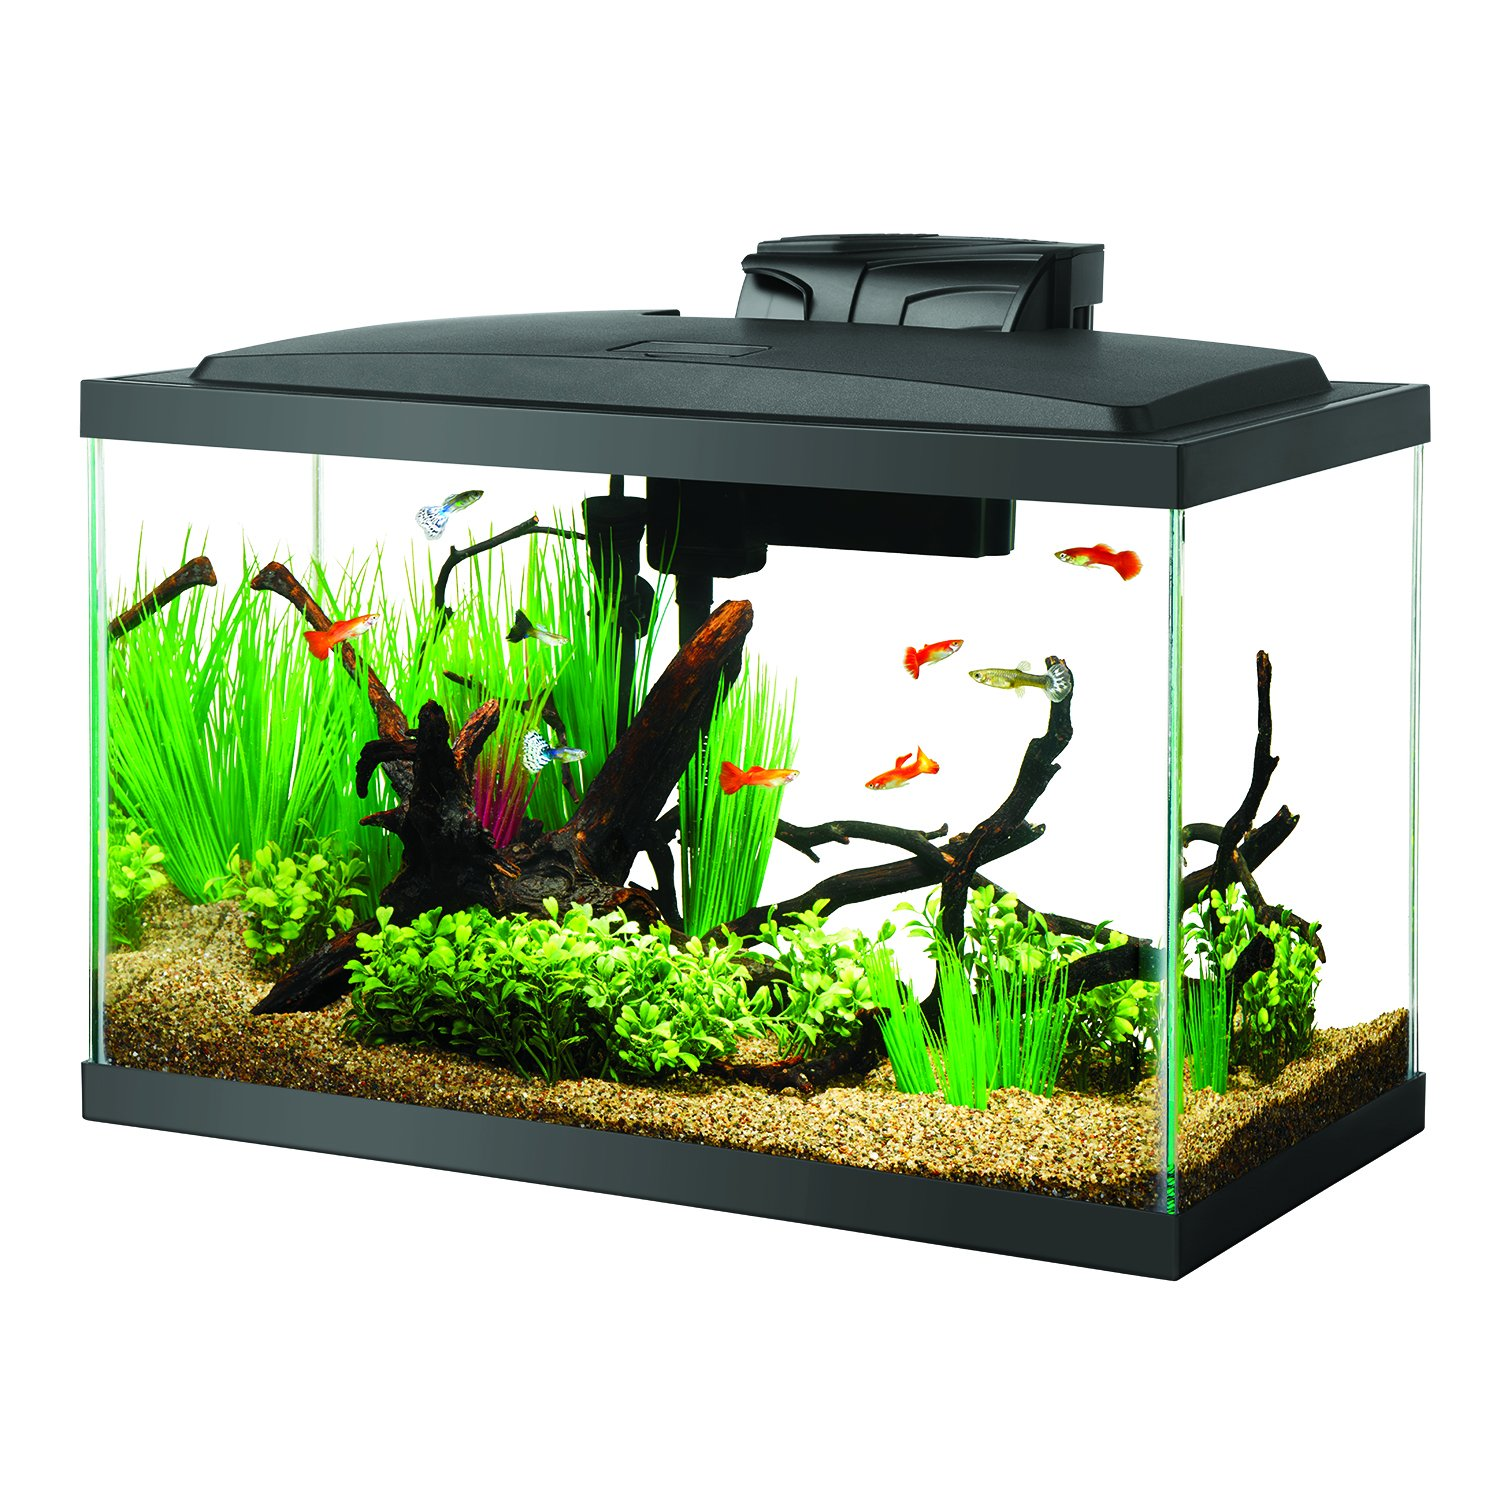 Aquarium fish tank starter kit -